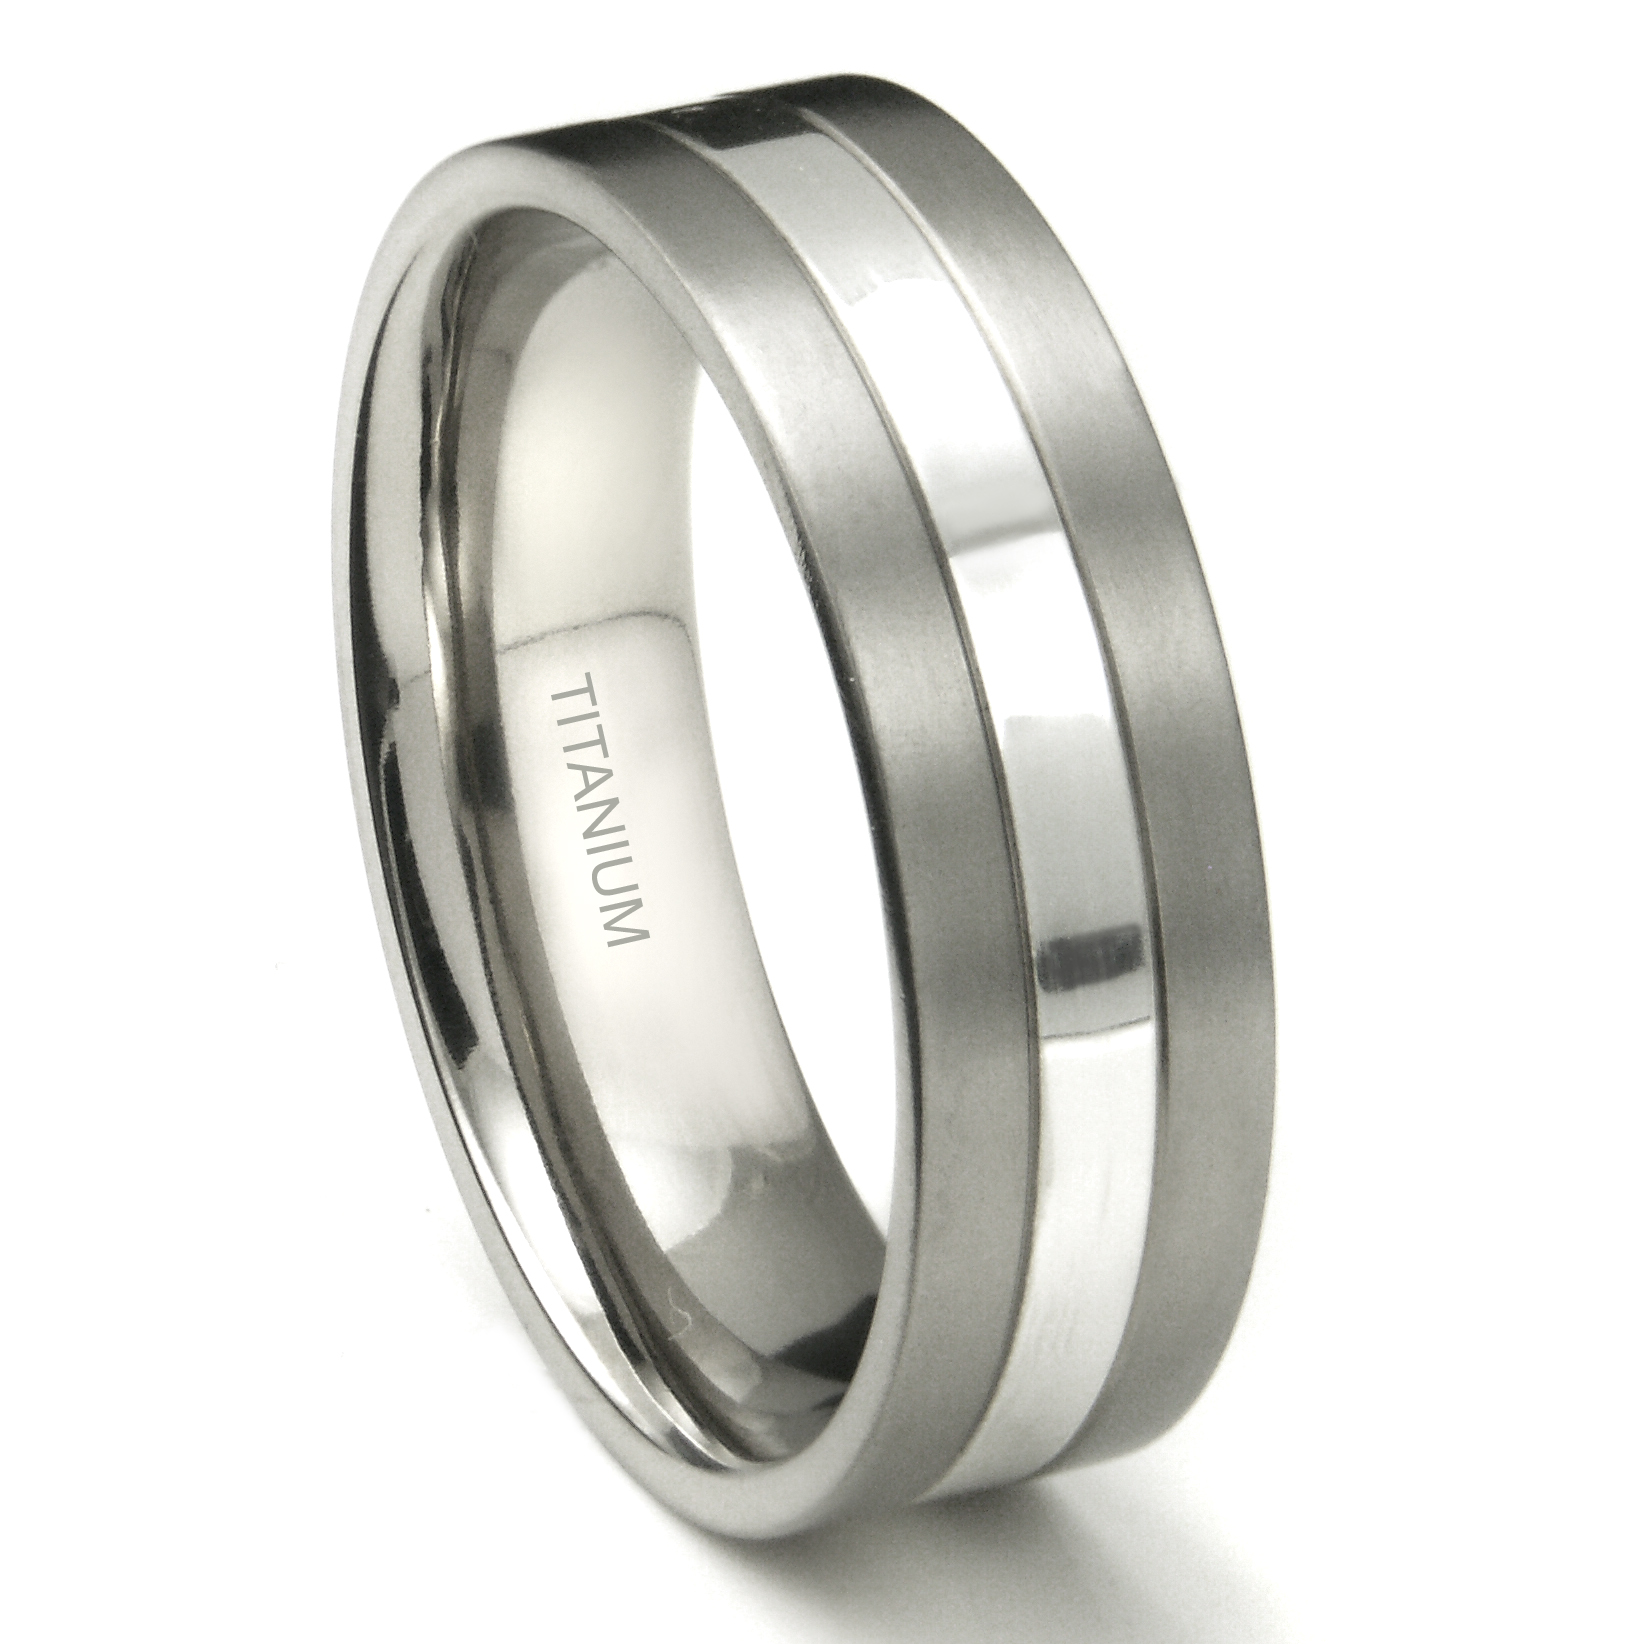 inspiration those of nice band sets you jewelry bands platinum who ring wedding obniiis com looking designs for choose